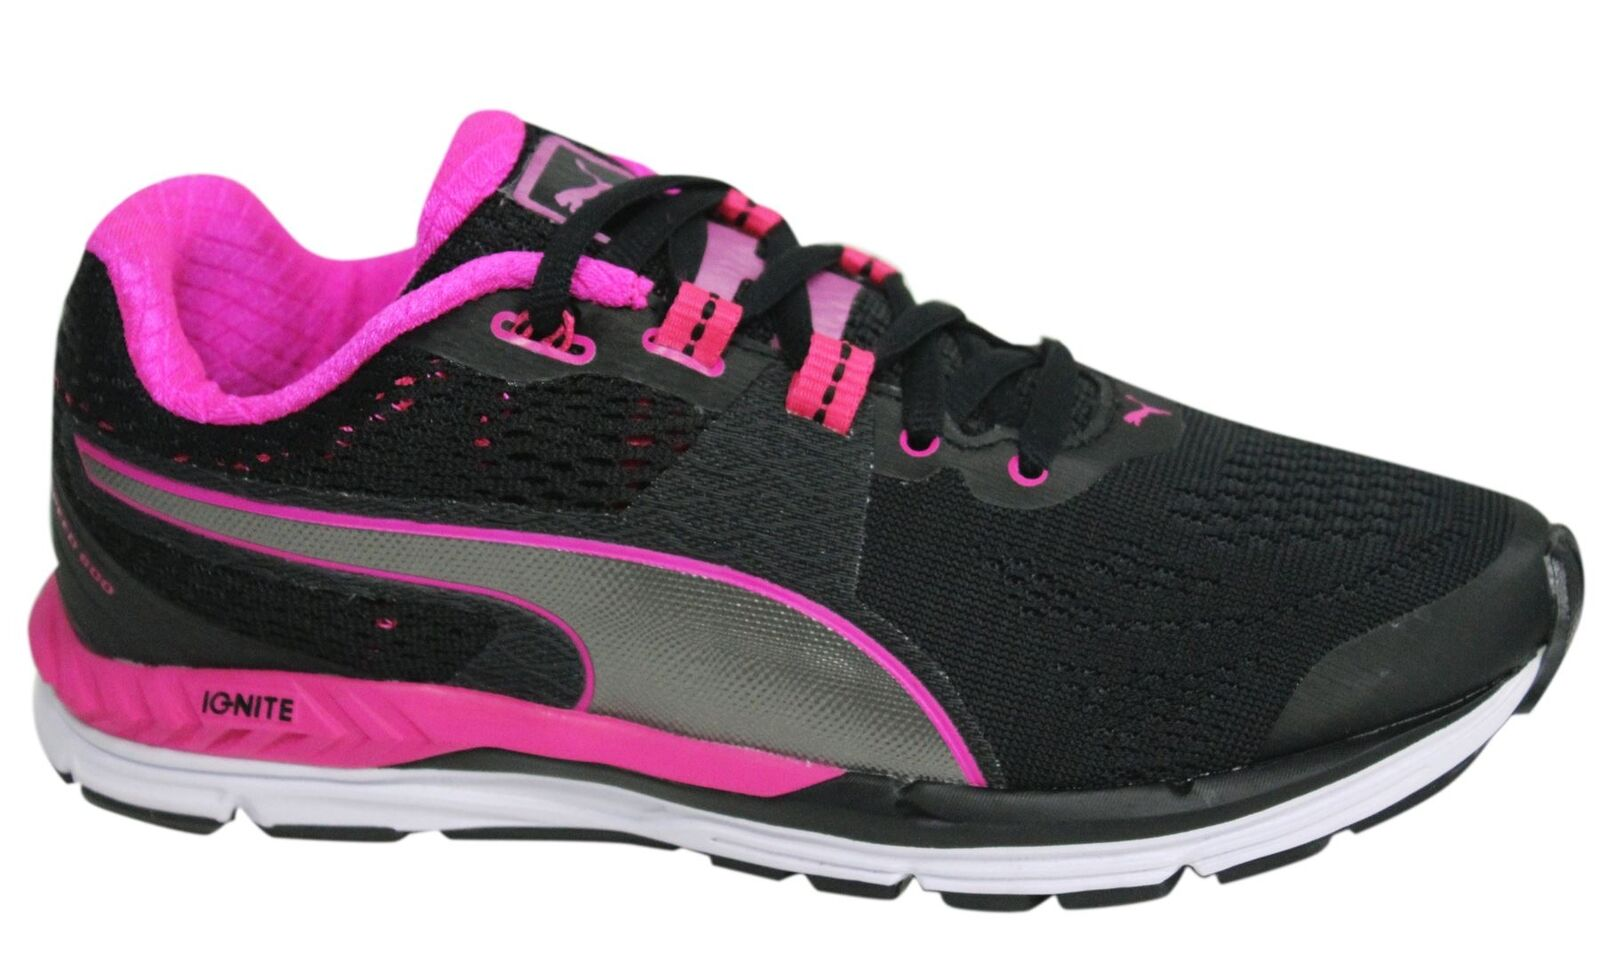 Puma Speed 600 Ignite Lace Up Black Pink Womens Textile Trainers 188789 07 M8